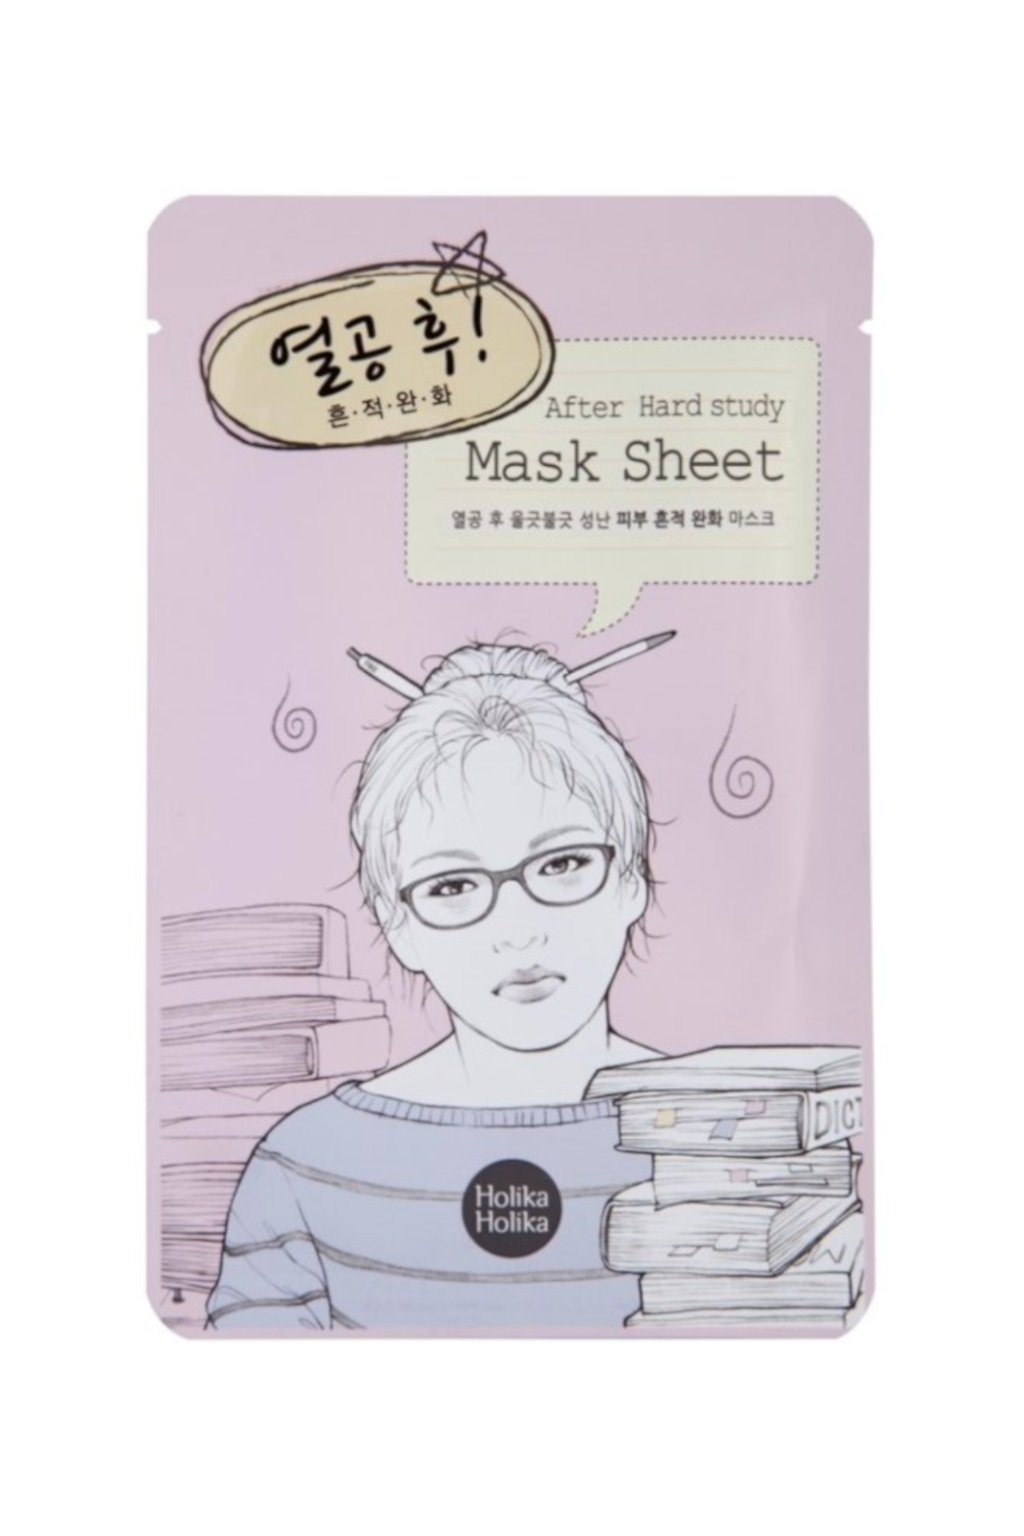 Holika Holika After Hard Study Mask Sheet